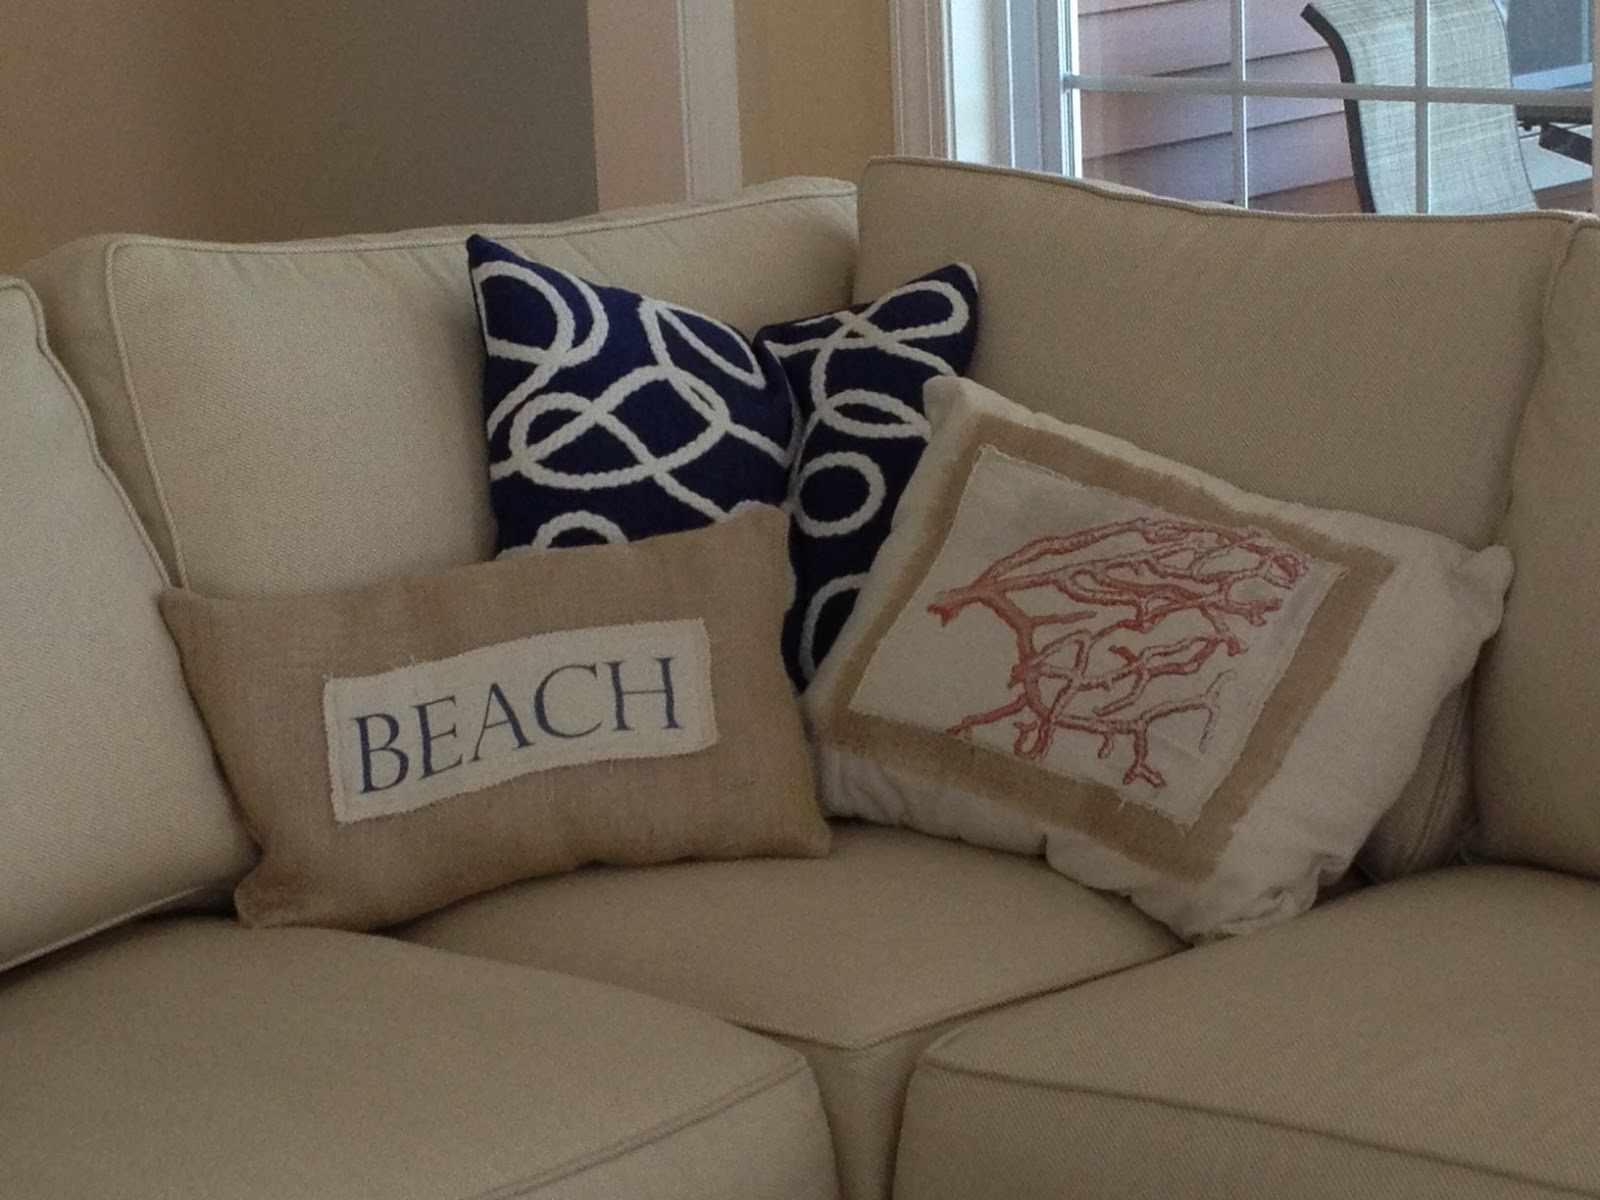 jonathan image discontinued adler palm alt throw needlepoint pillow beach modern pillows